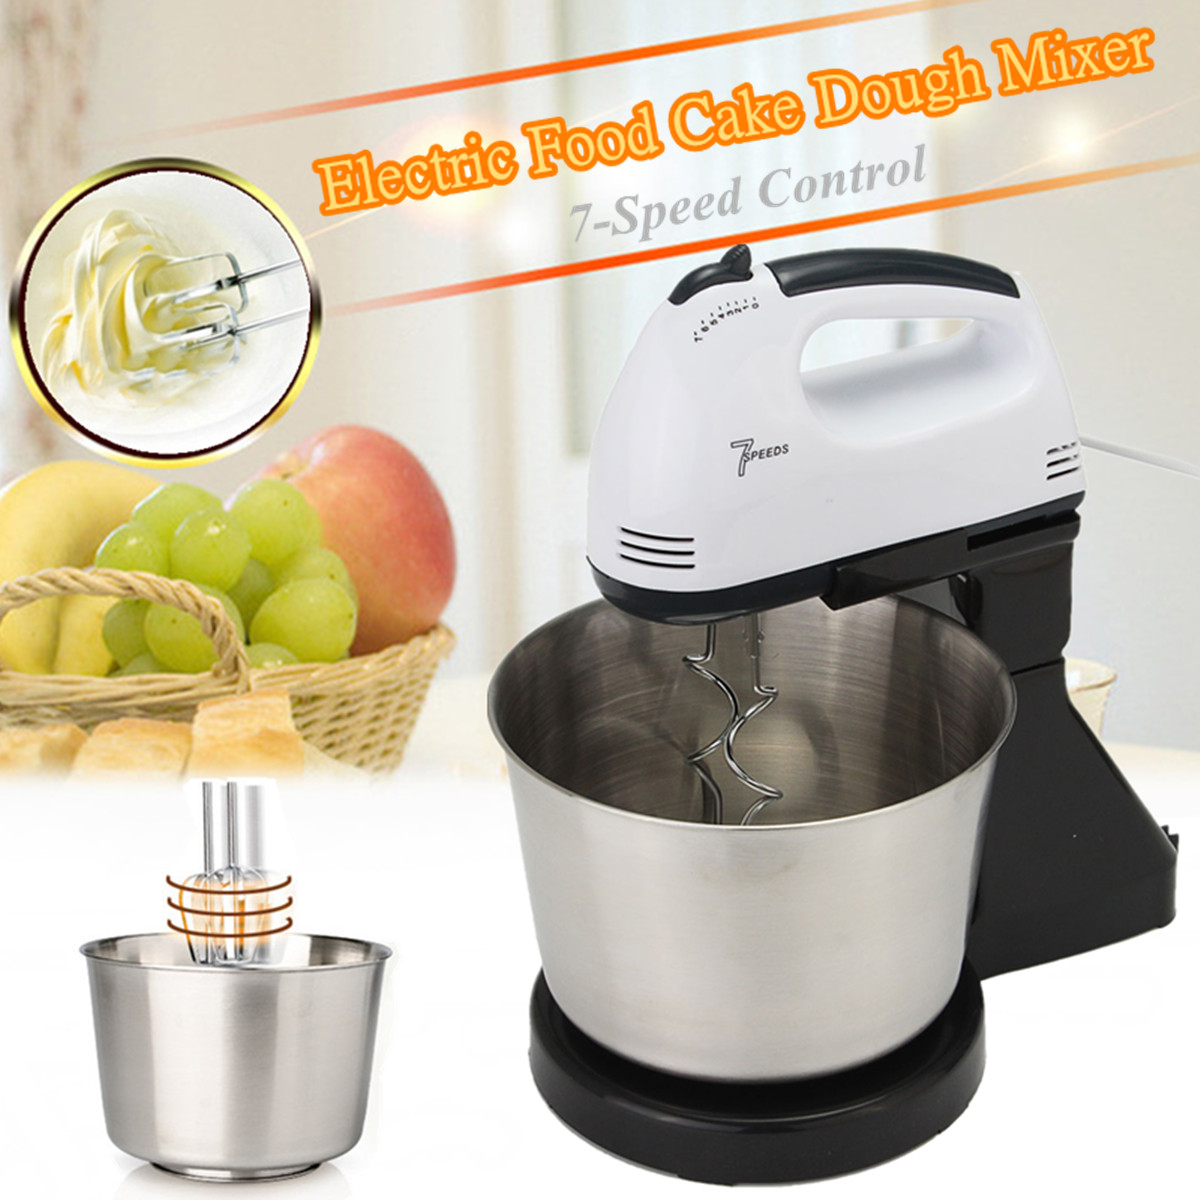 7 Speed Automatic Whisk Household Hand Food Mixer Electric Stand Mixers Handheld Flour Bread Egg Beater Blenders with Bowl bear mixer blenders electric egg whisk both handheld and table type dough mixer and noodle machine egg beater